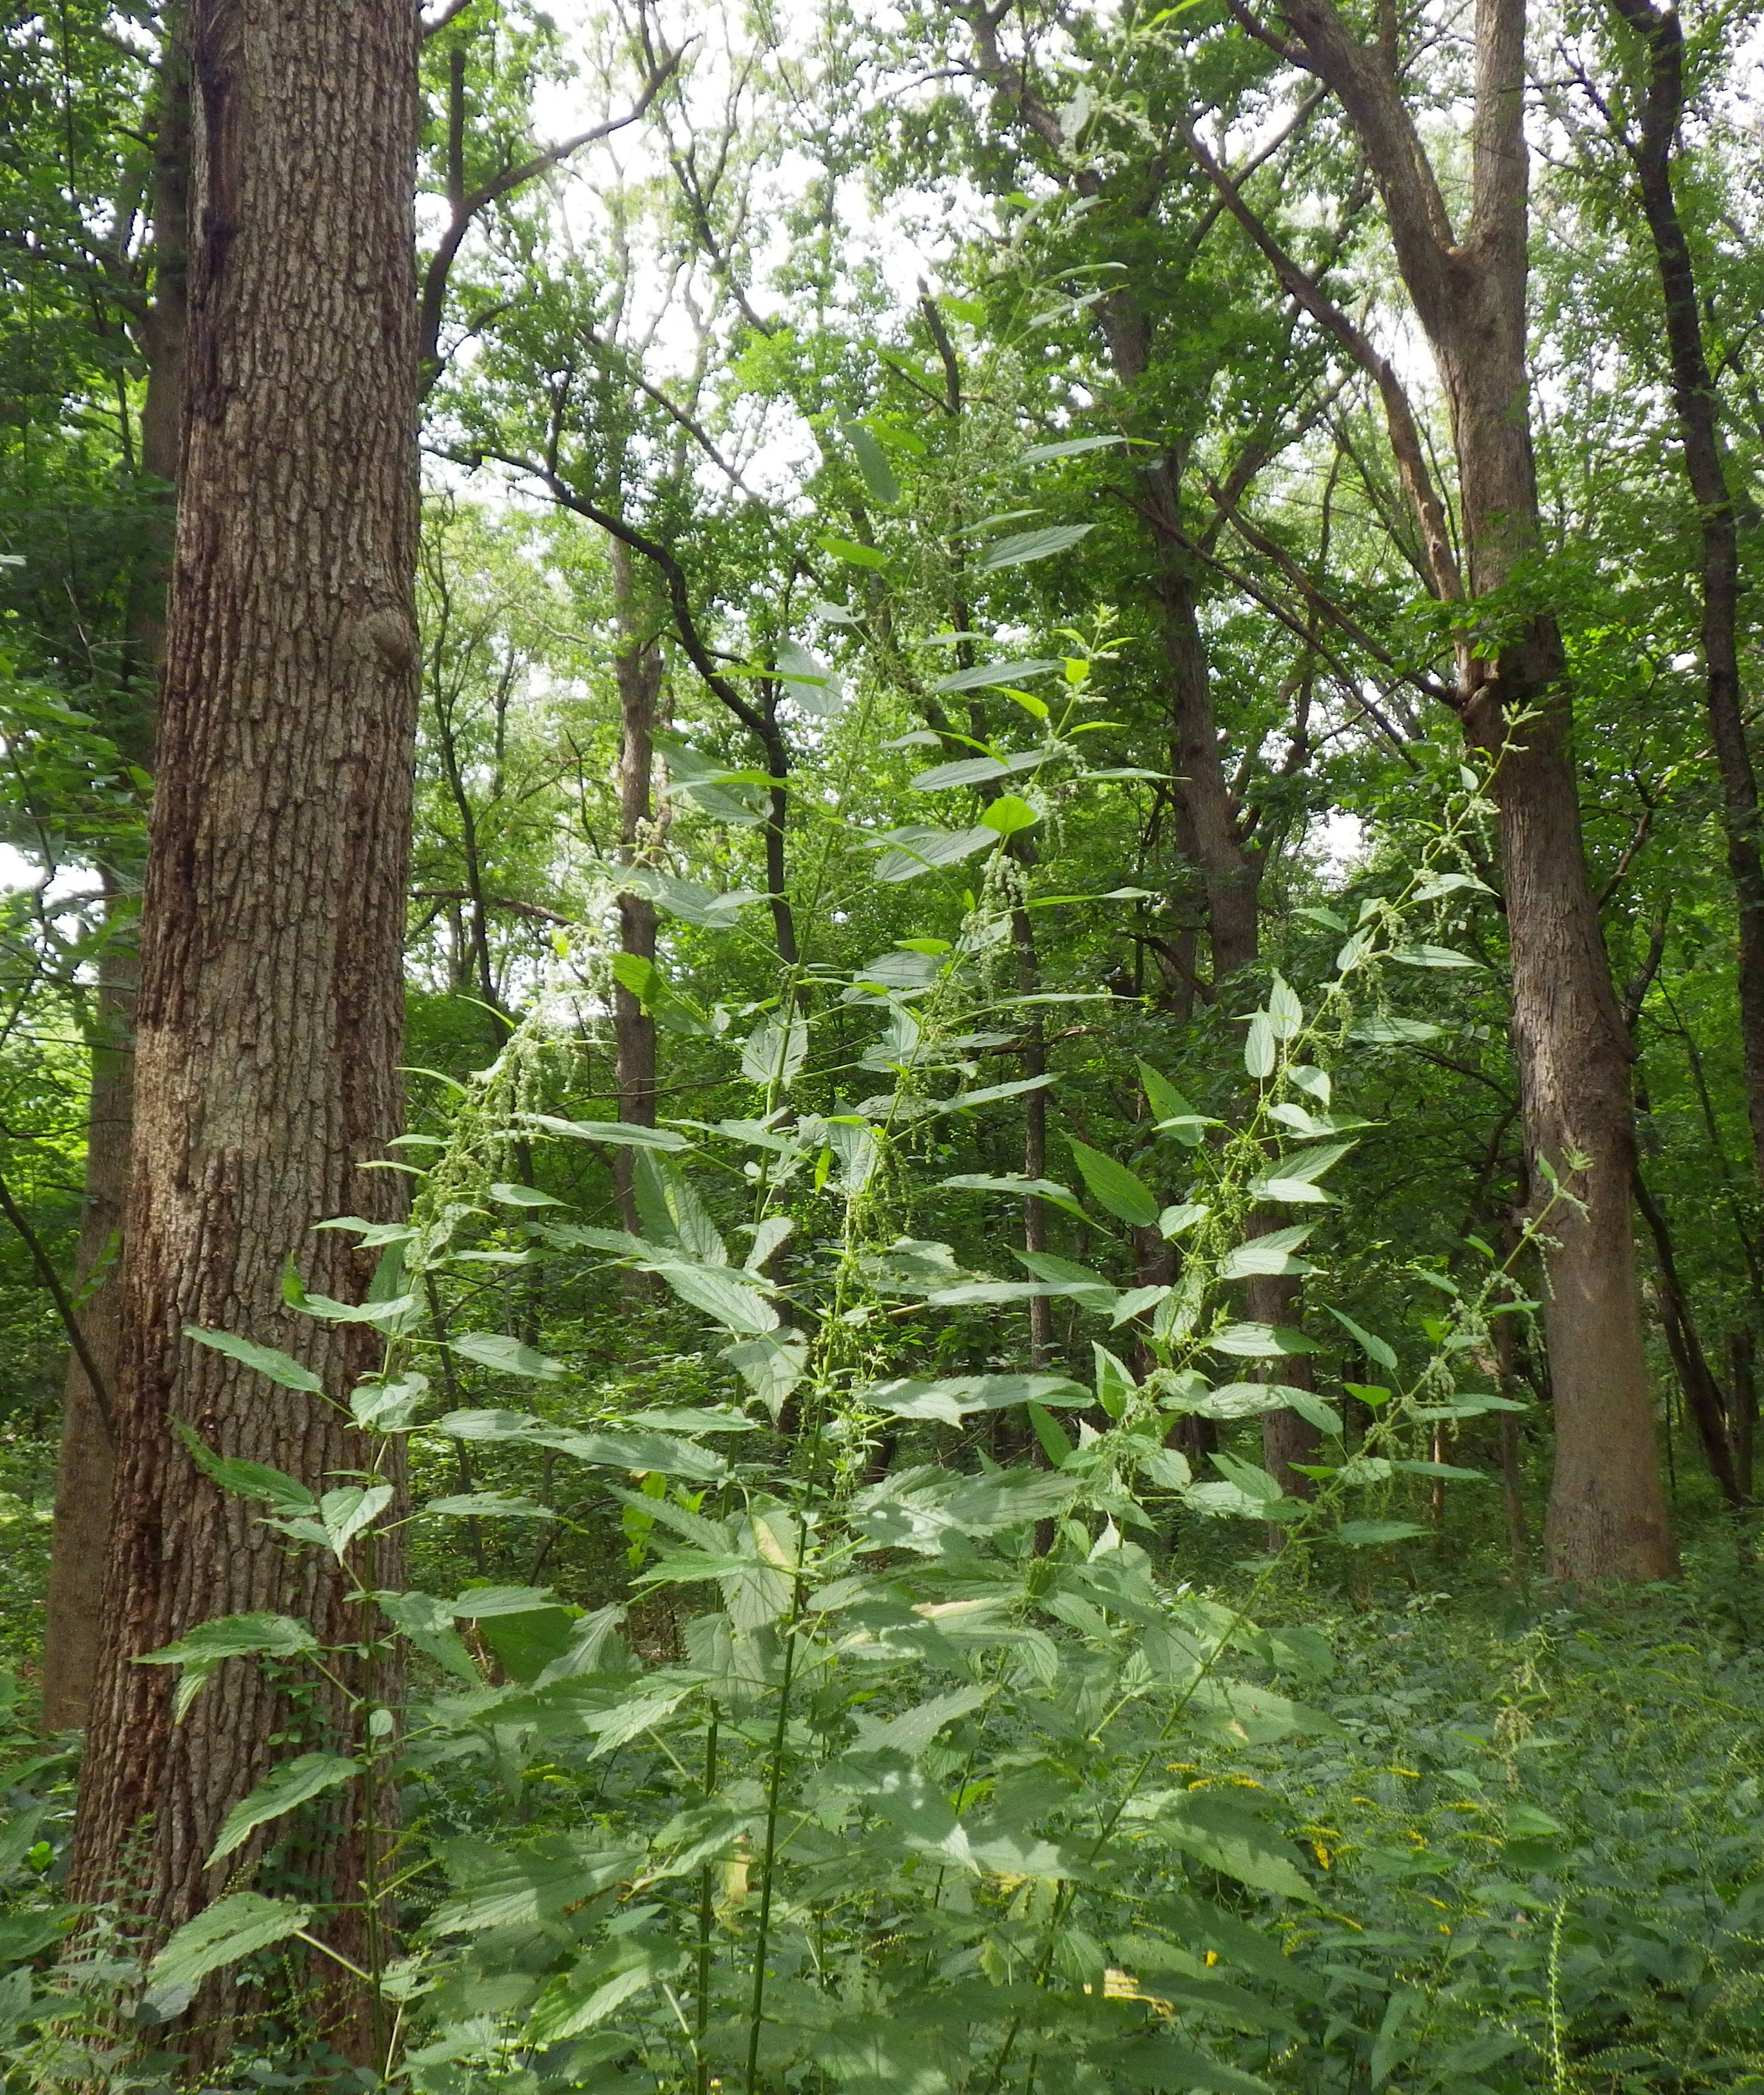 Nettles are tall green plants that are in their prime from midsummer to fall.